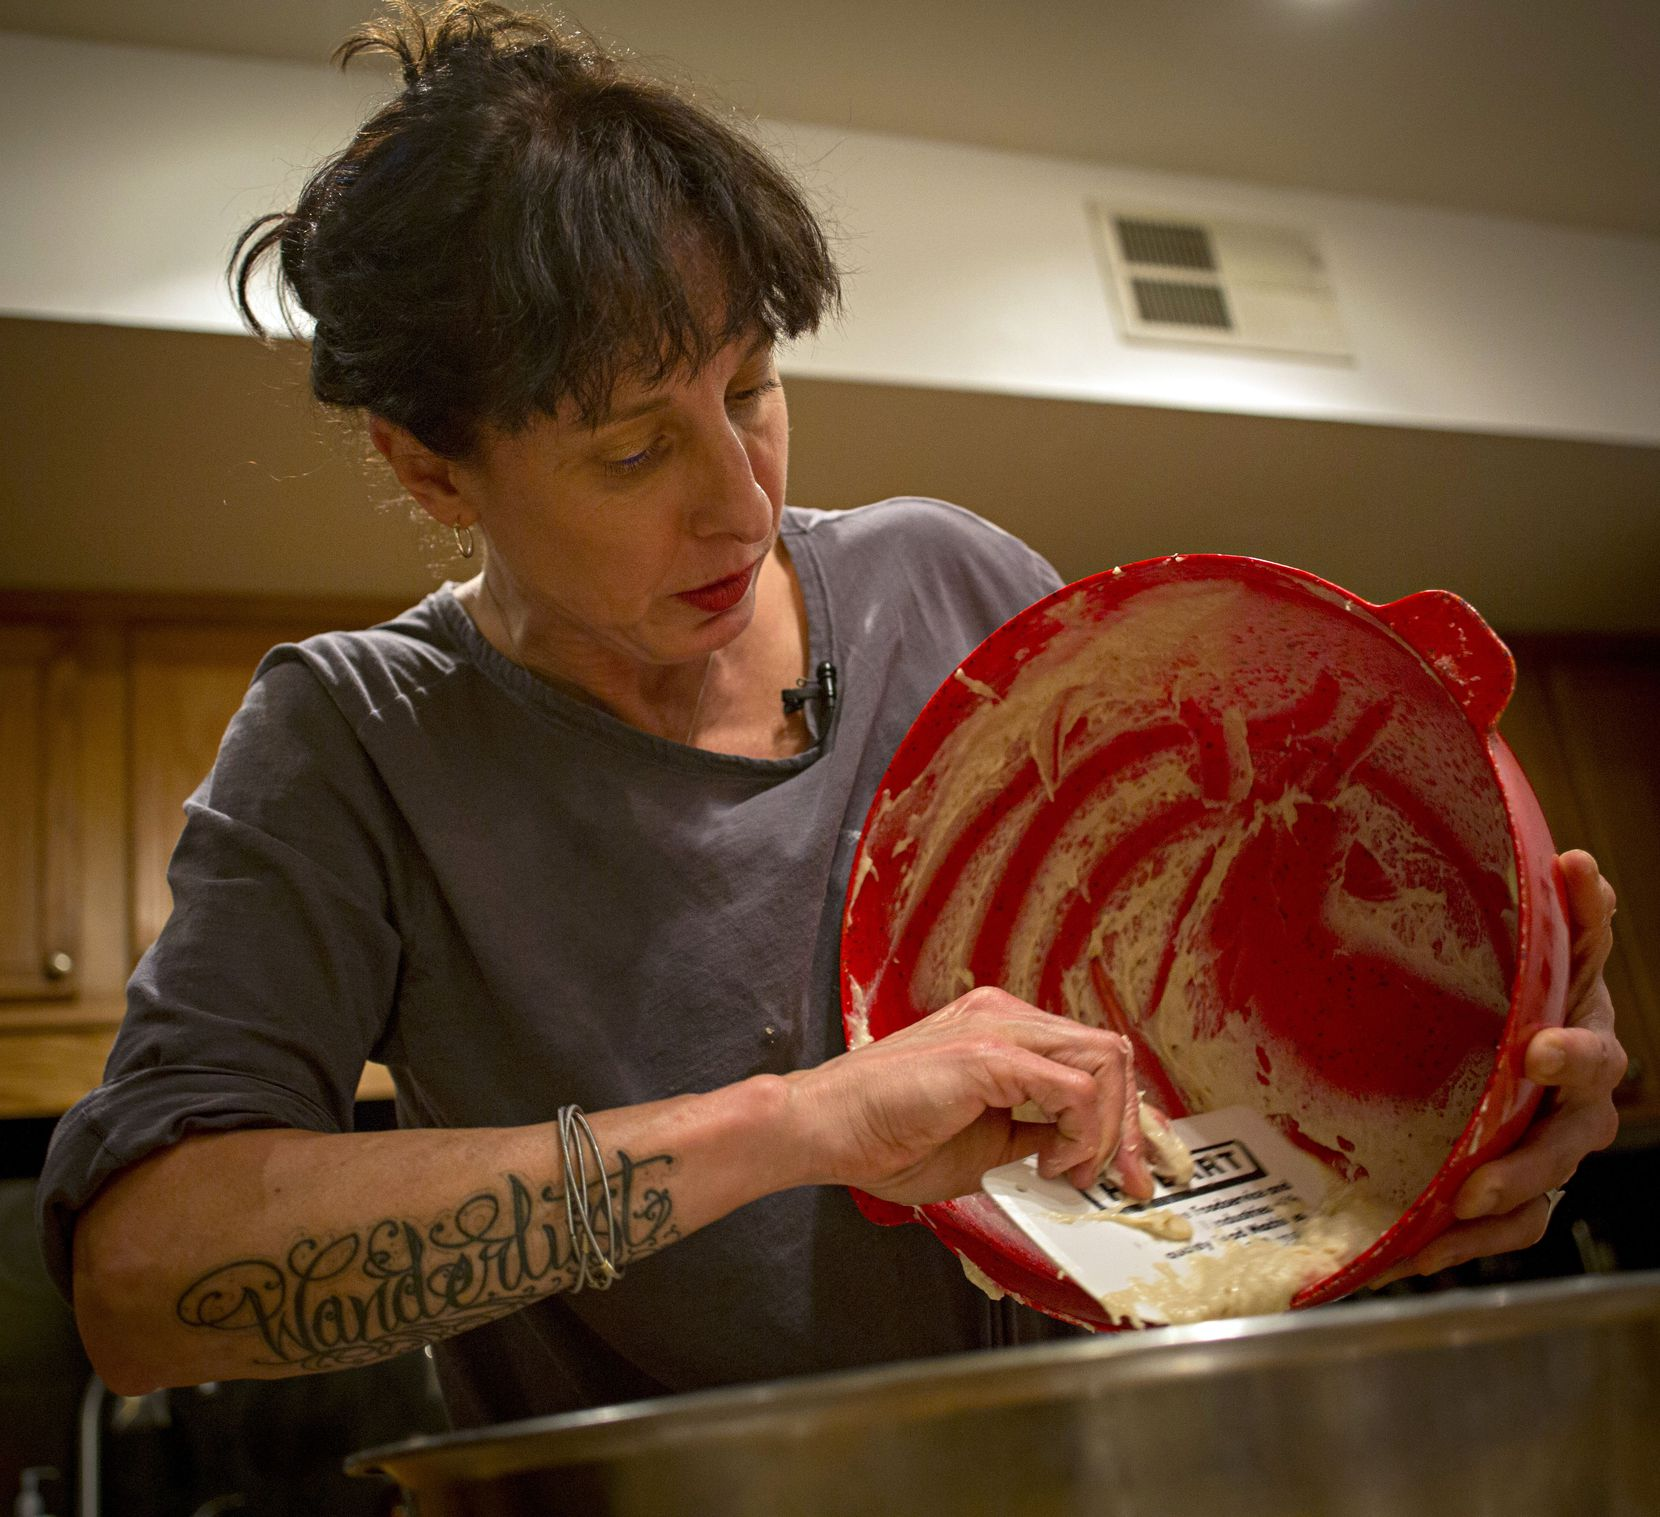 Katherine Clapner scrapes dough from a mixing bowl as she makes kolaches at her home Friday, February 5, 2016 in Dallas.